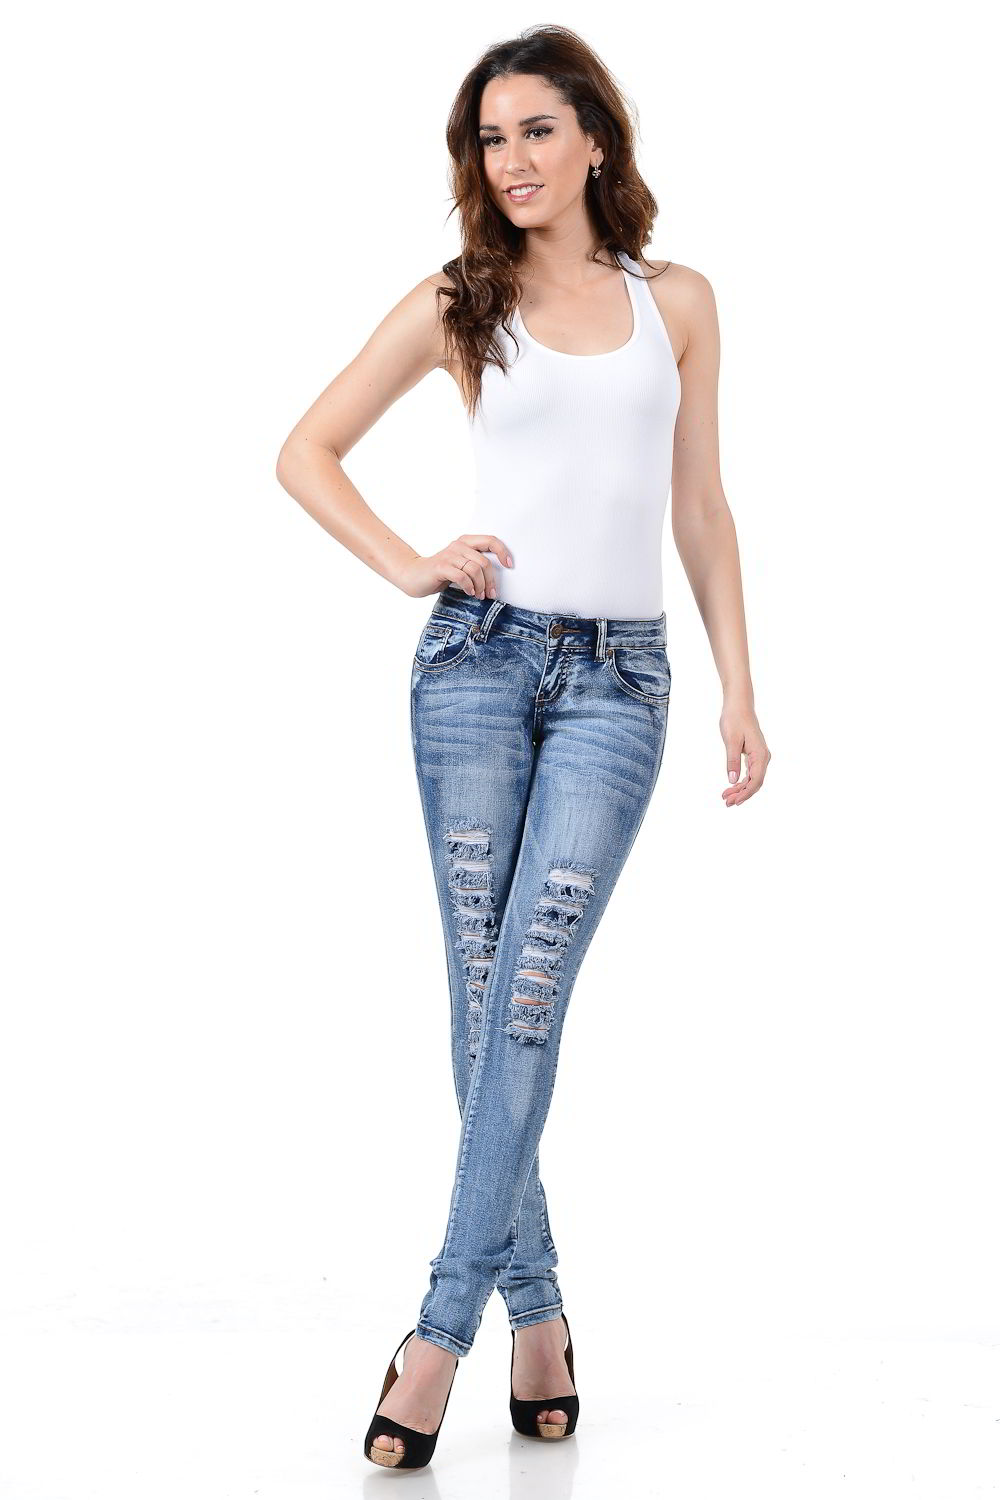 Sweet Look Premium Edition Women's Jeans - Push Up - Style WG0230